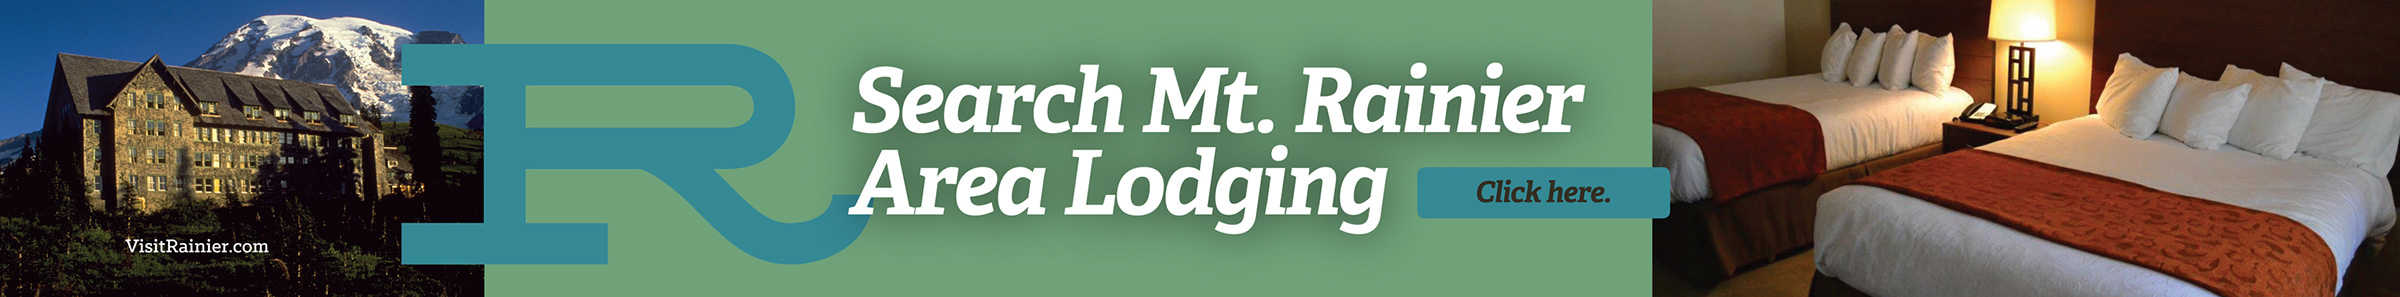 Search Mt. Rainier Area Lodging